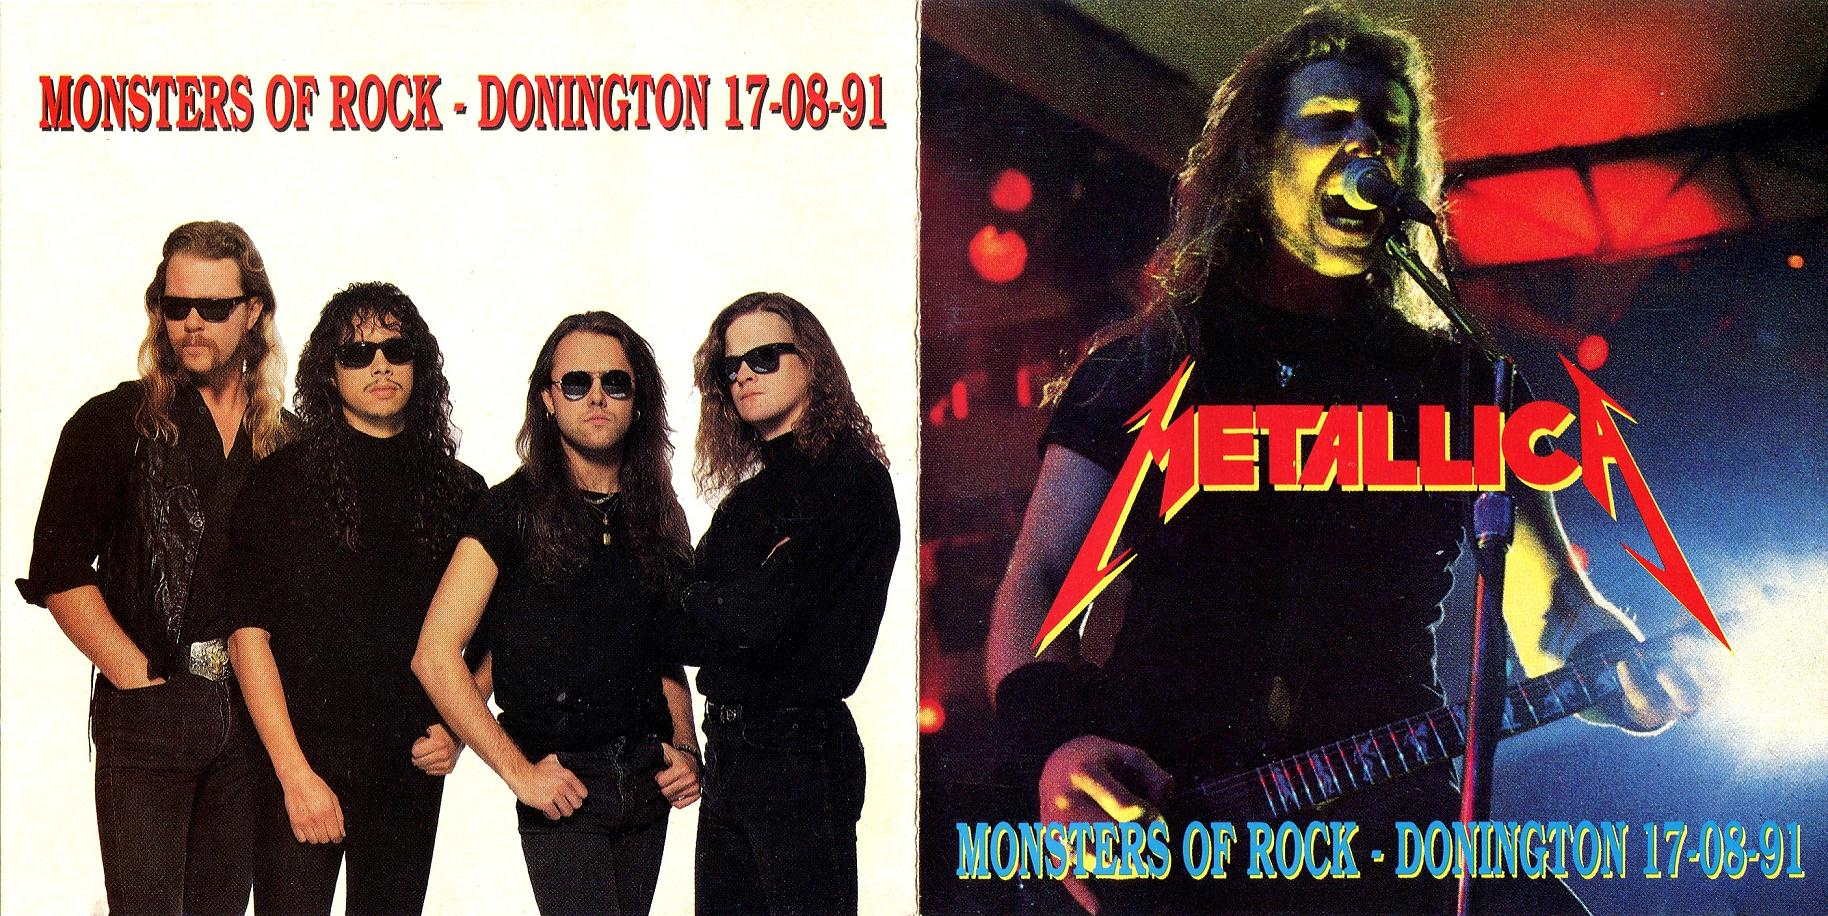 1991-08-17-monsters_of_rock_donington_17-08-91-front